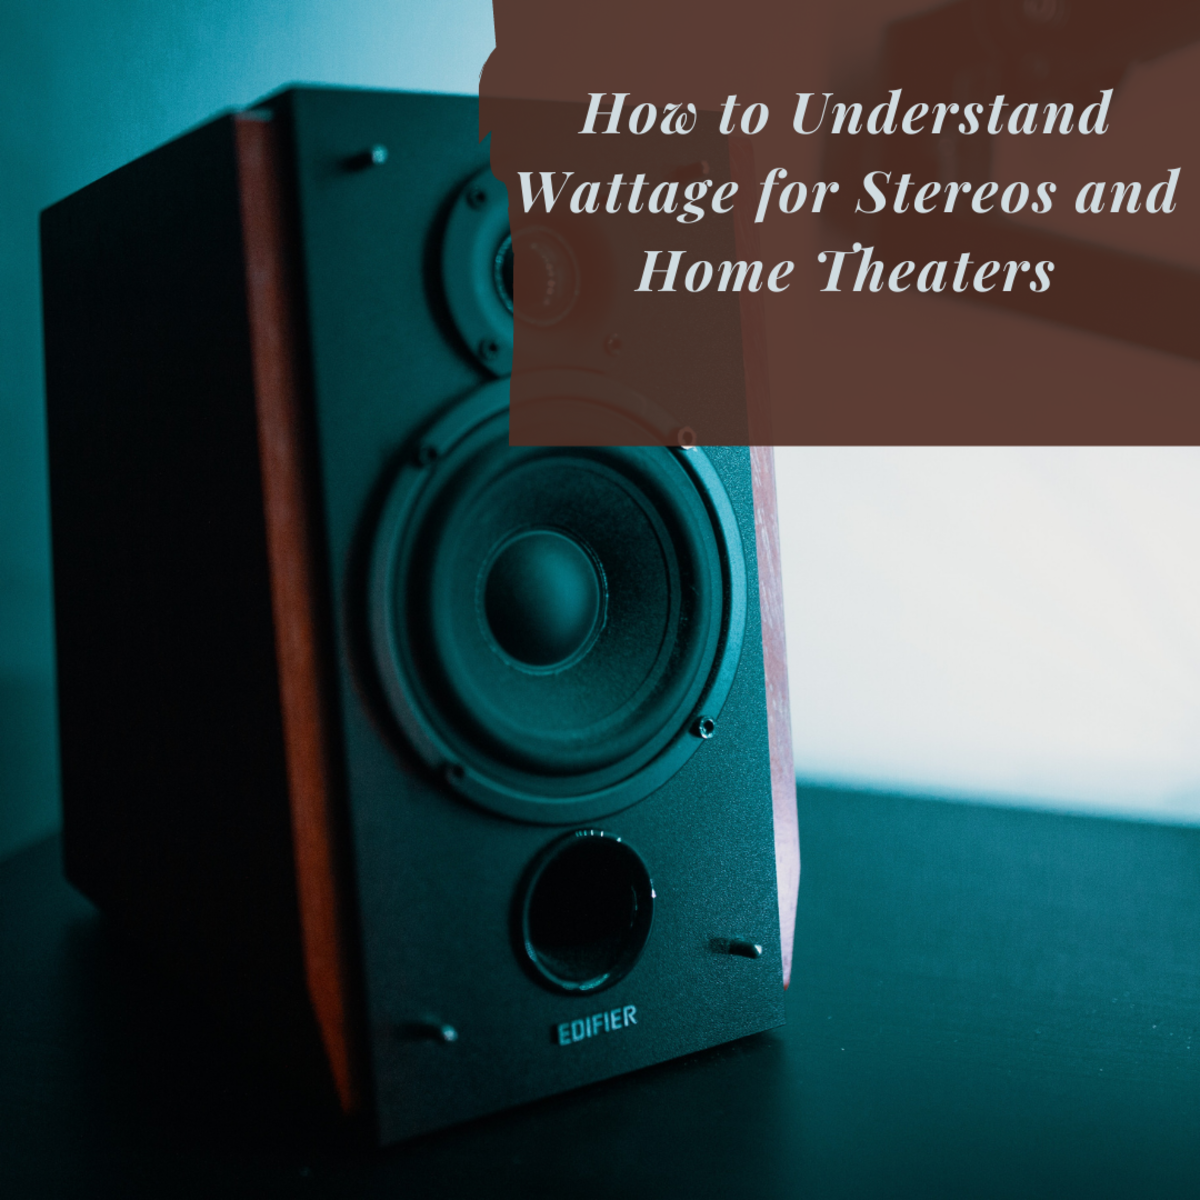 There is a whole new set of lingo to learn when shopping for stereo and home theater equipment.